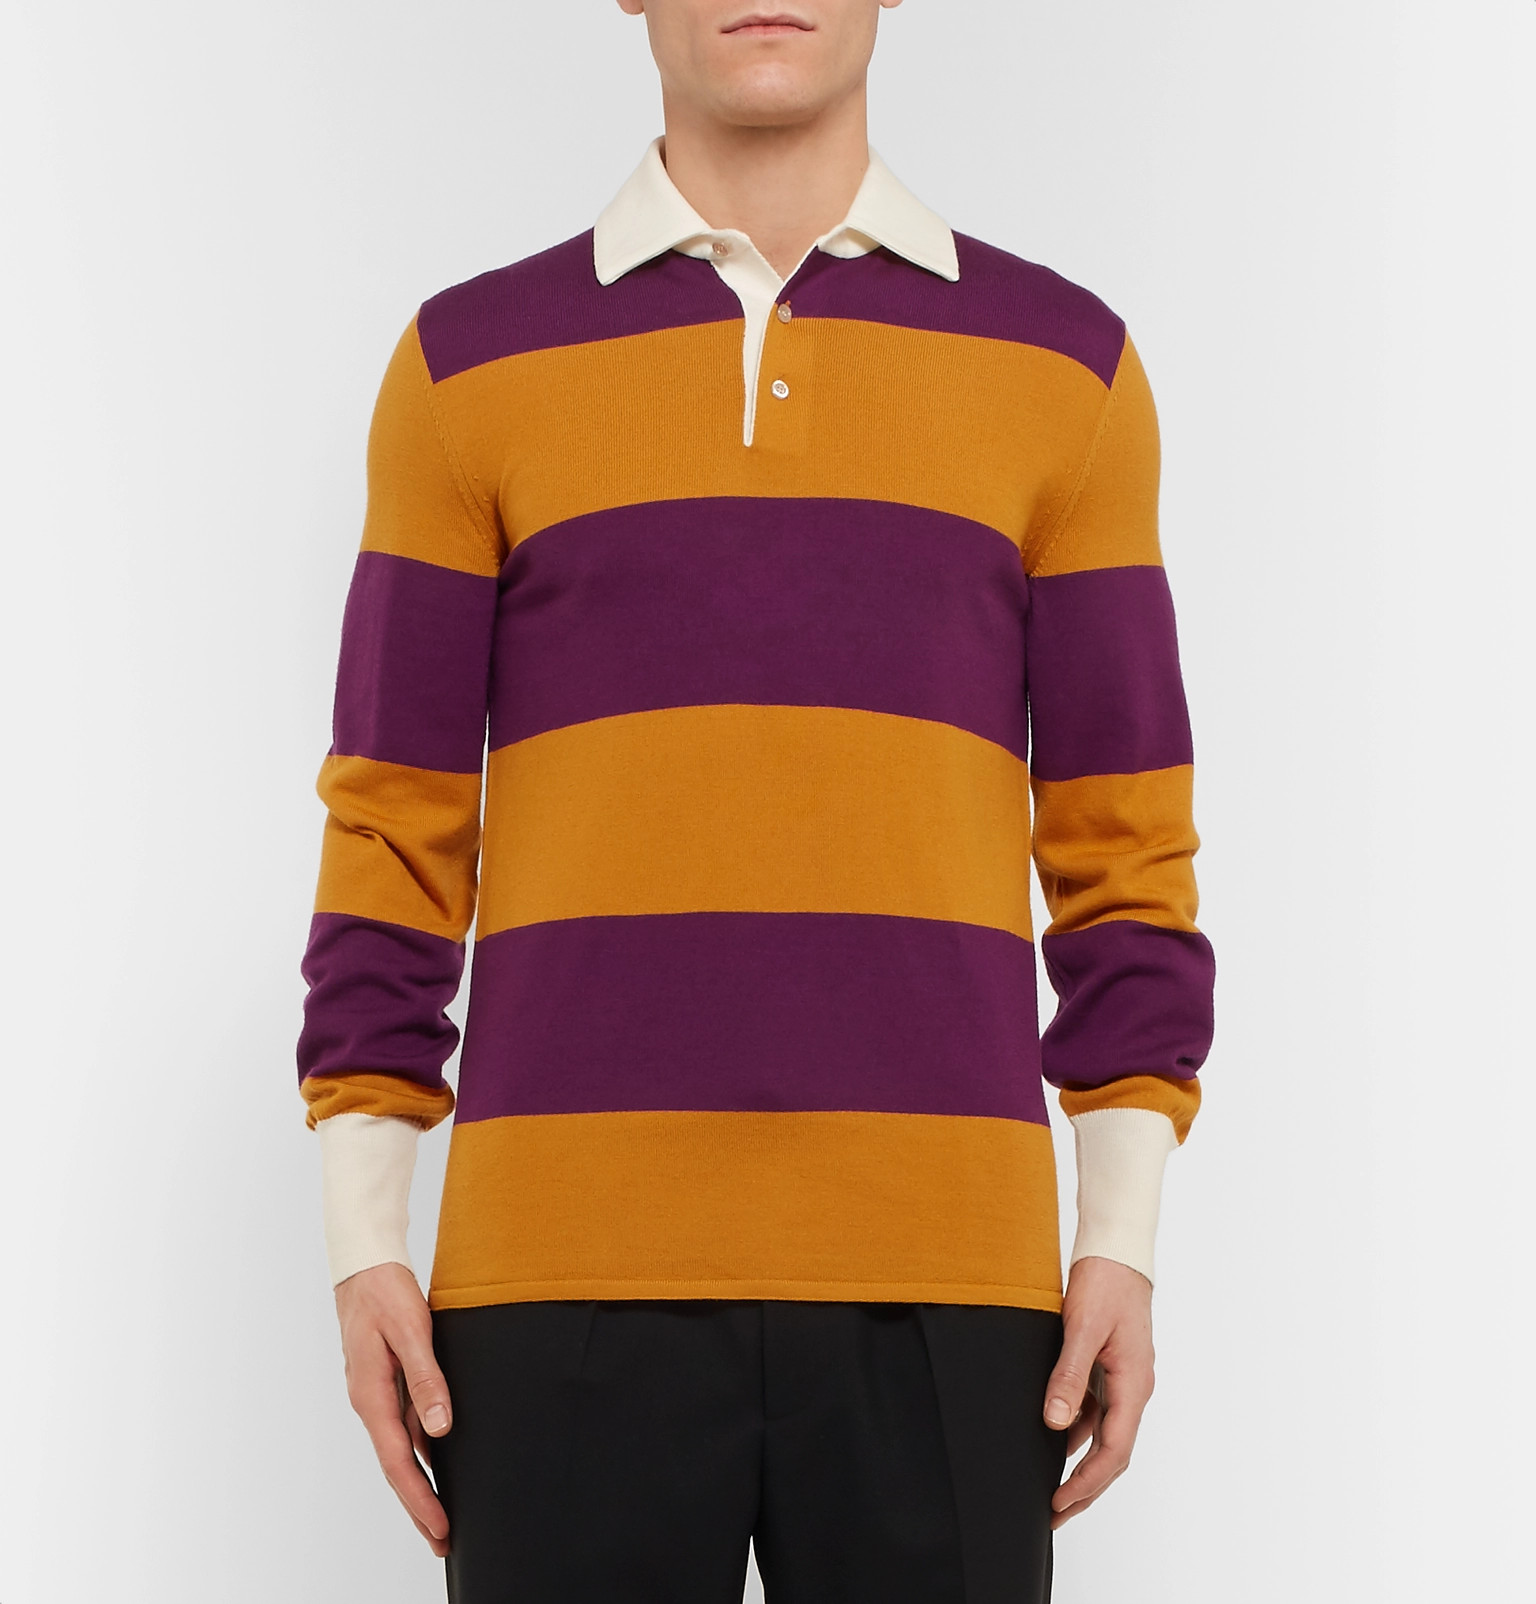 55f9e8787f7 Gucci - Embroidered Striped Wool Rugby Shirt